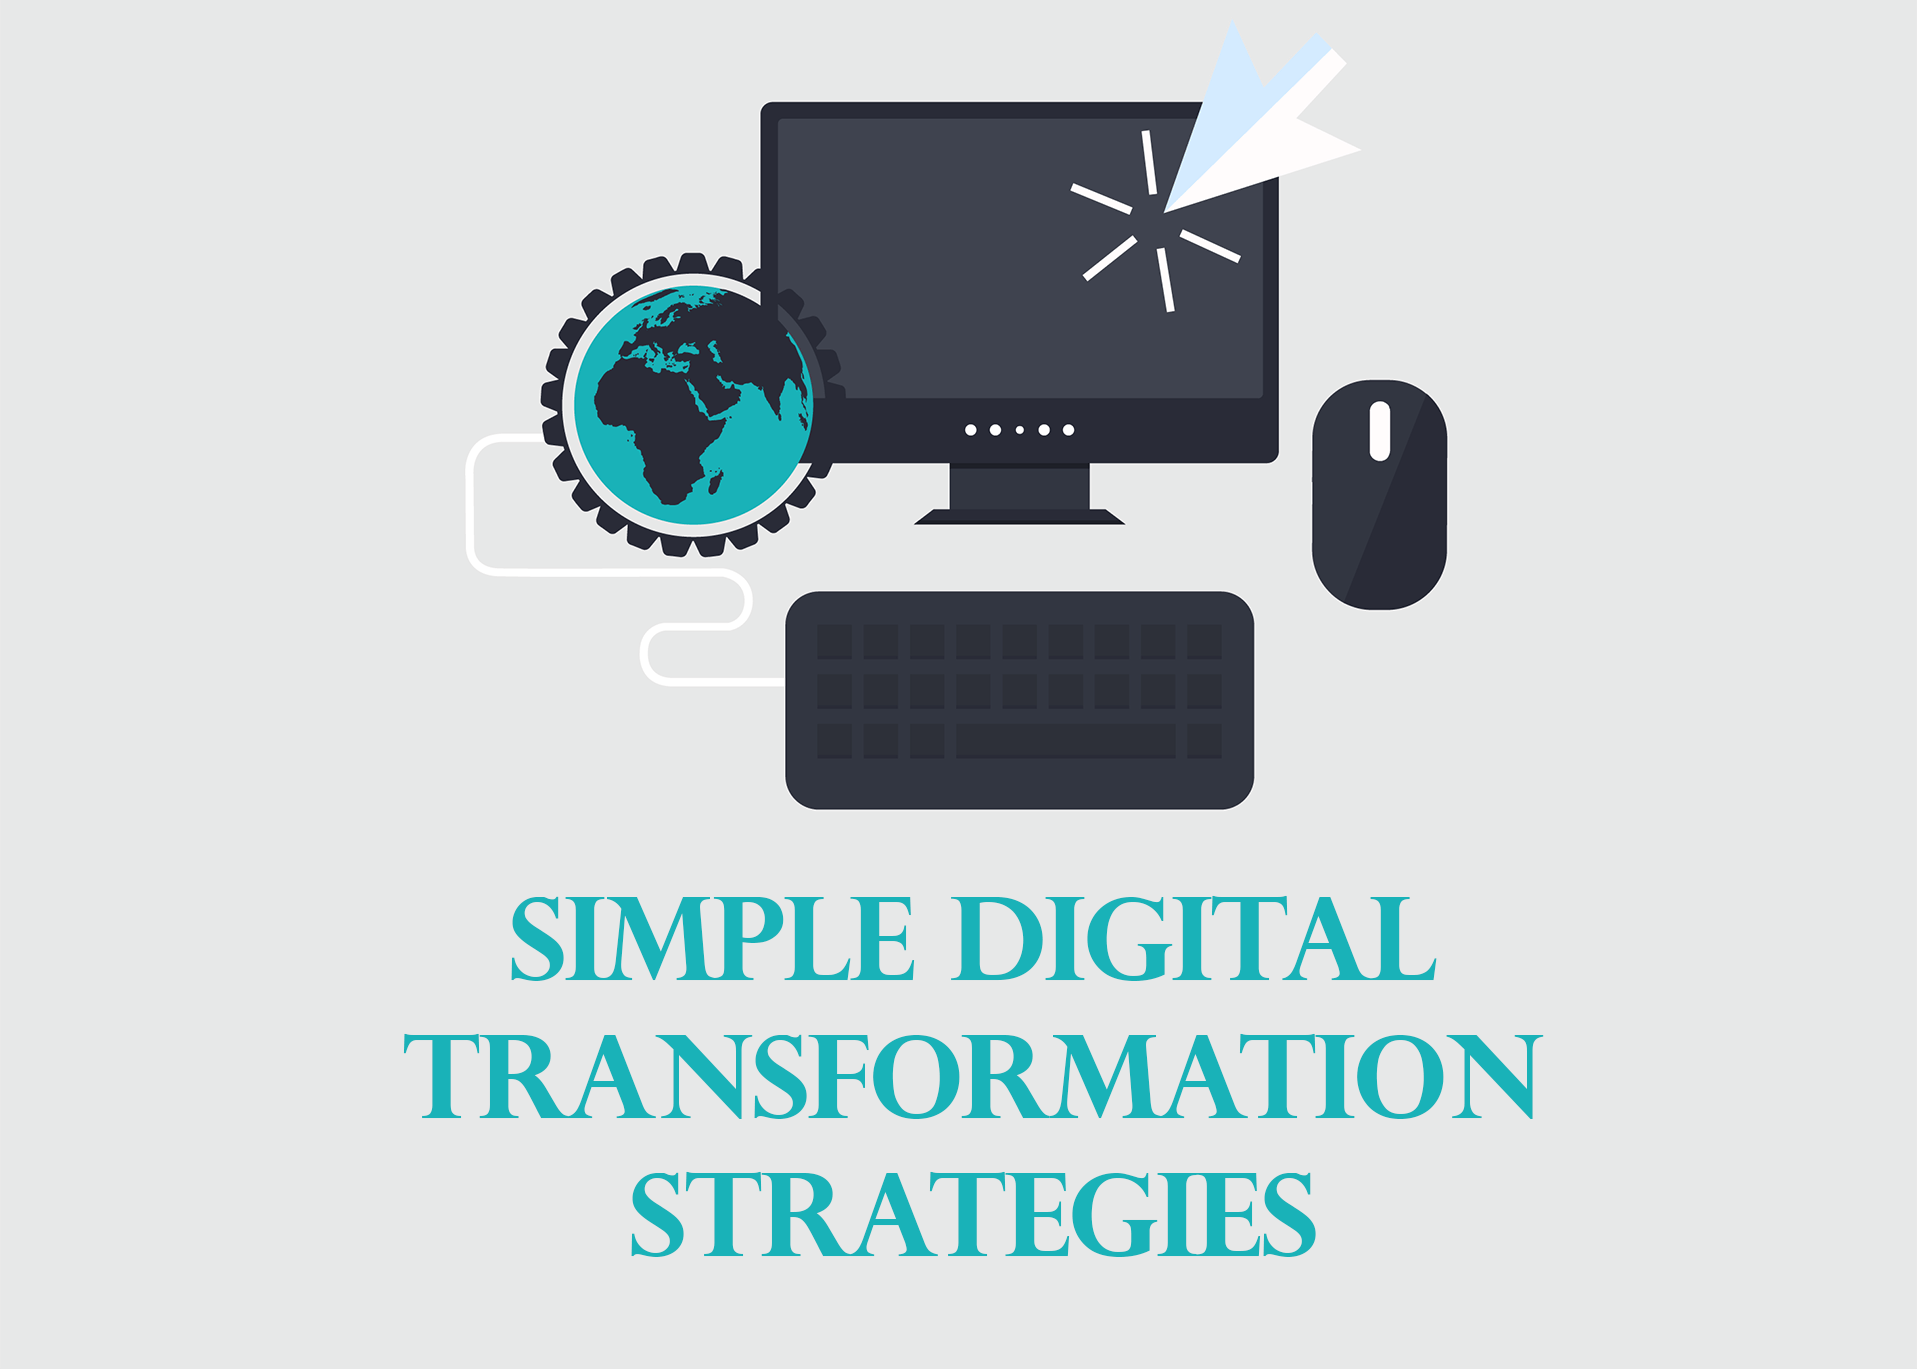 Simple Revolutionary Digital Transformation Strategies For Your Dream Business